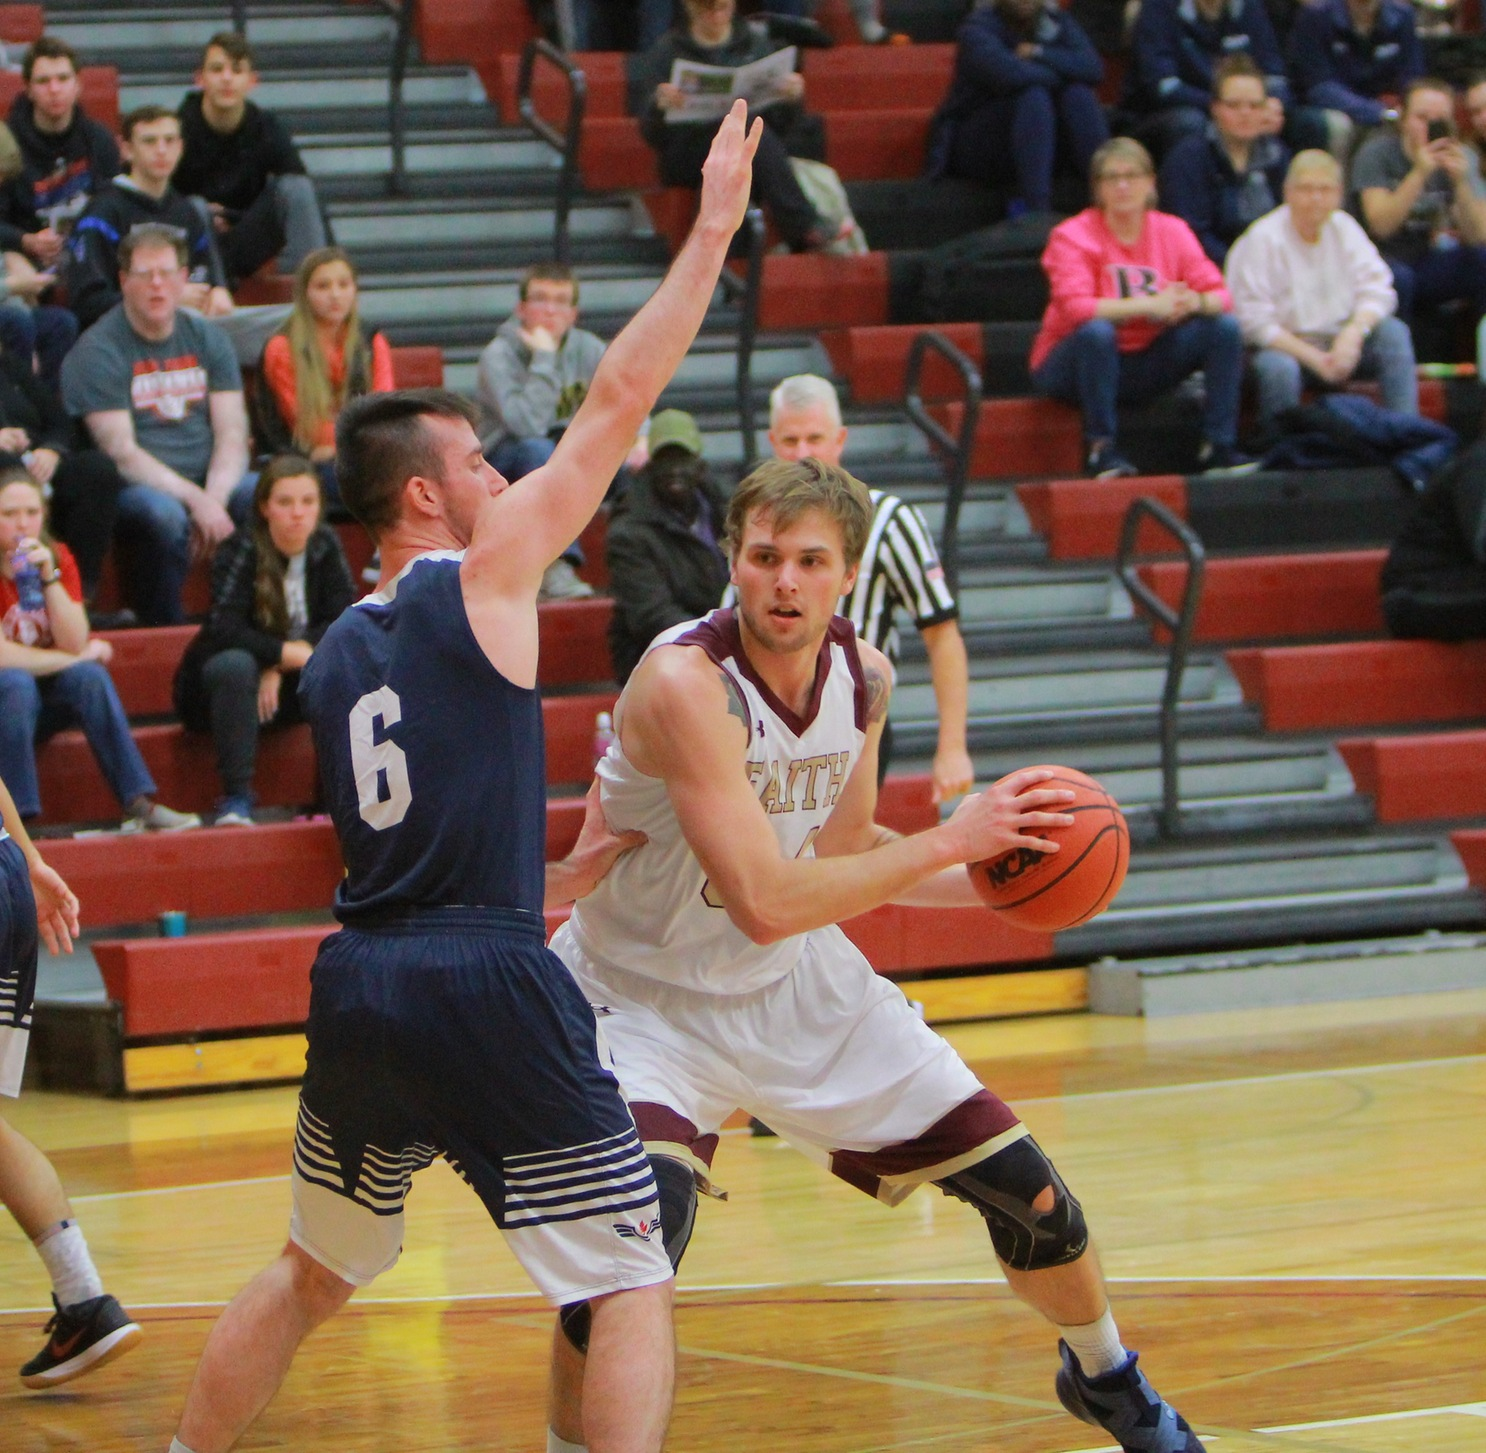 Tanner Van Beek led the Faith Eagles with 13 points in a loss to Randall University